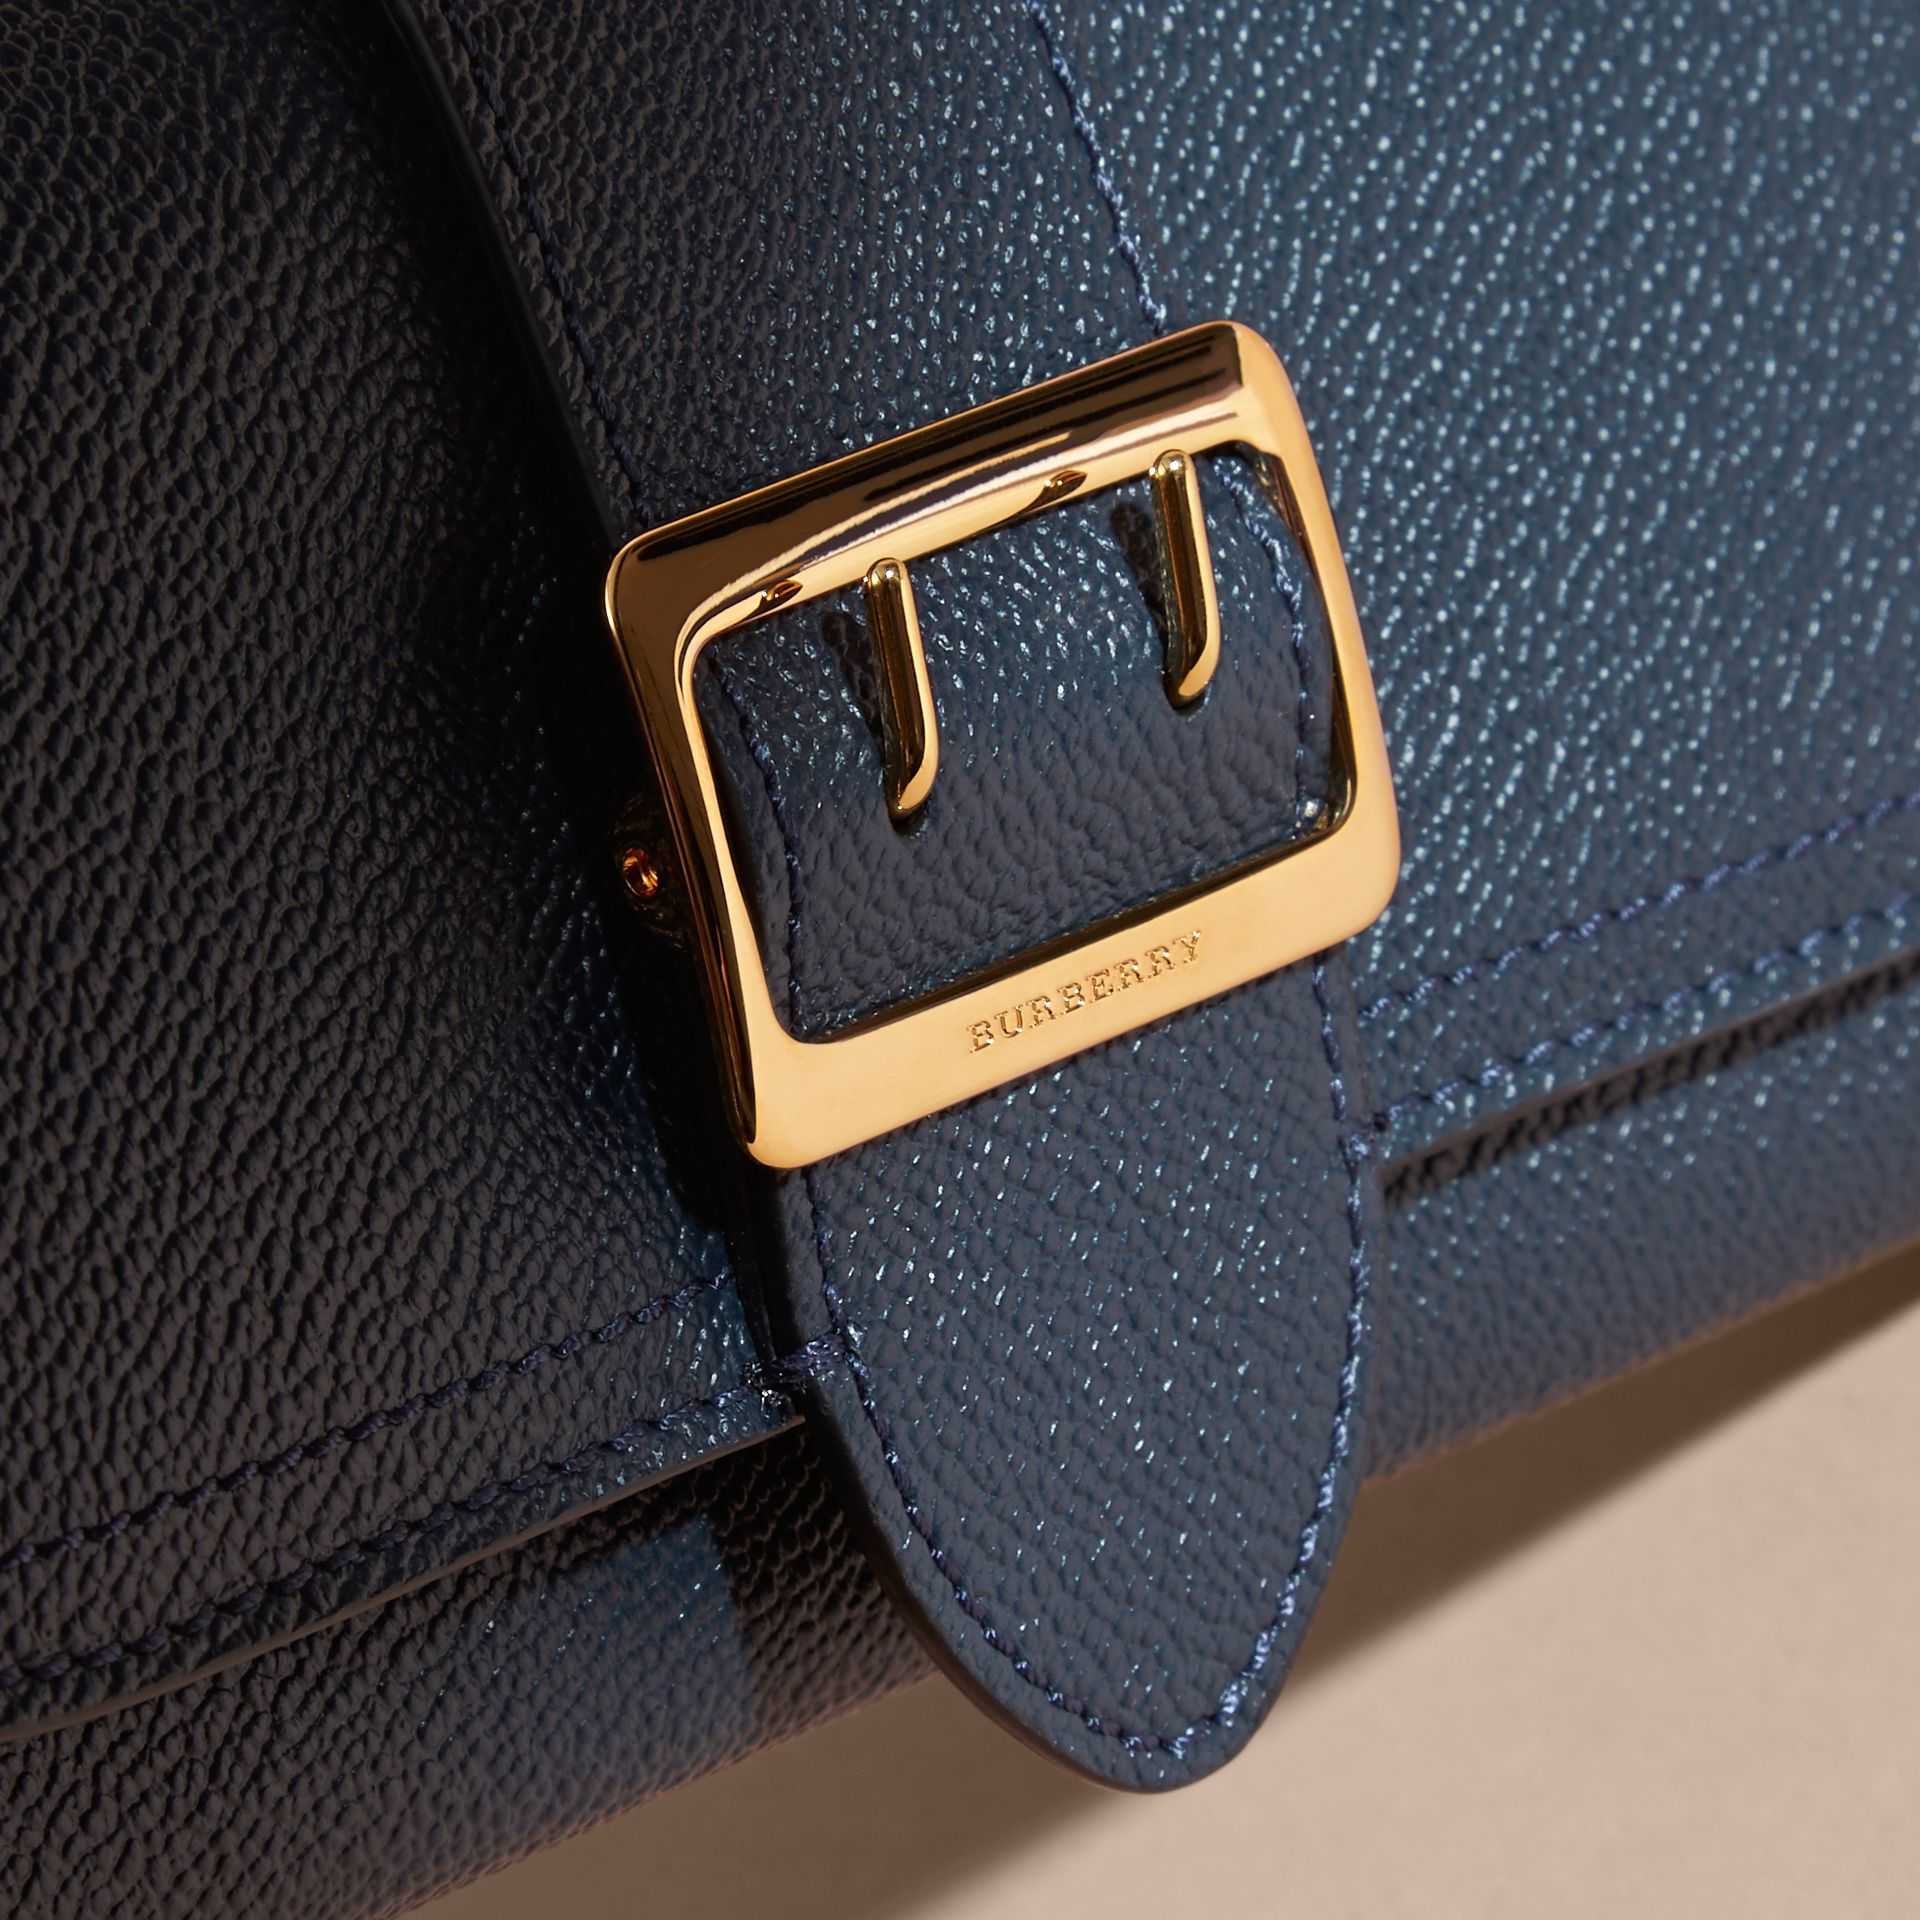 Textured Leather Continental Wallet in Blue Carbon - Women | Burberry Singapore - gallery image 4